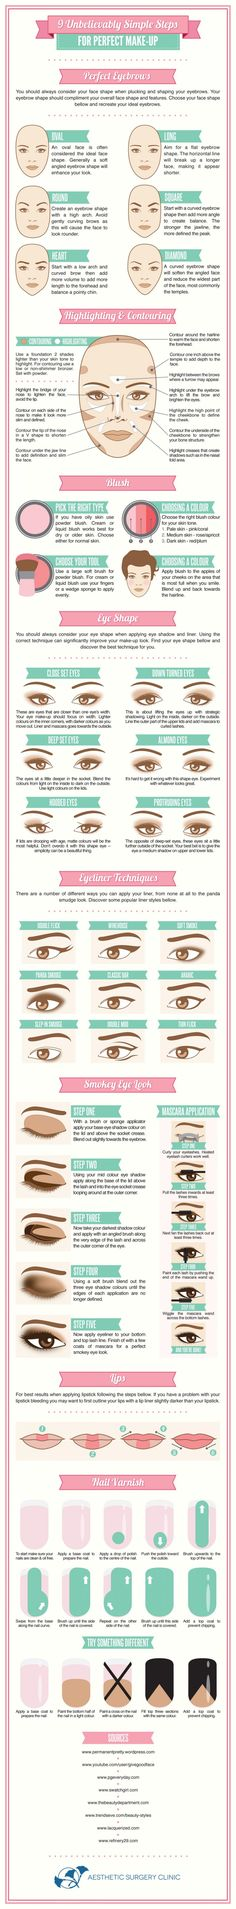 Planning a big night out when everything has to look just so?Save a few bucks on a professional makeup artist and do it yourself with  this infographic that covers everything from the achieving a killer manicure to contouring and highlighting tips for the whole face.Via Visual.ly.Like infographics? So do we.Photo credit: Fotolia, Graphics credit: Canva